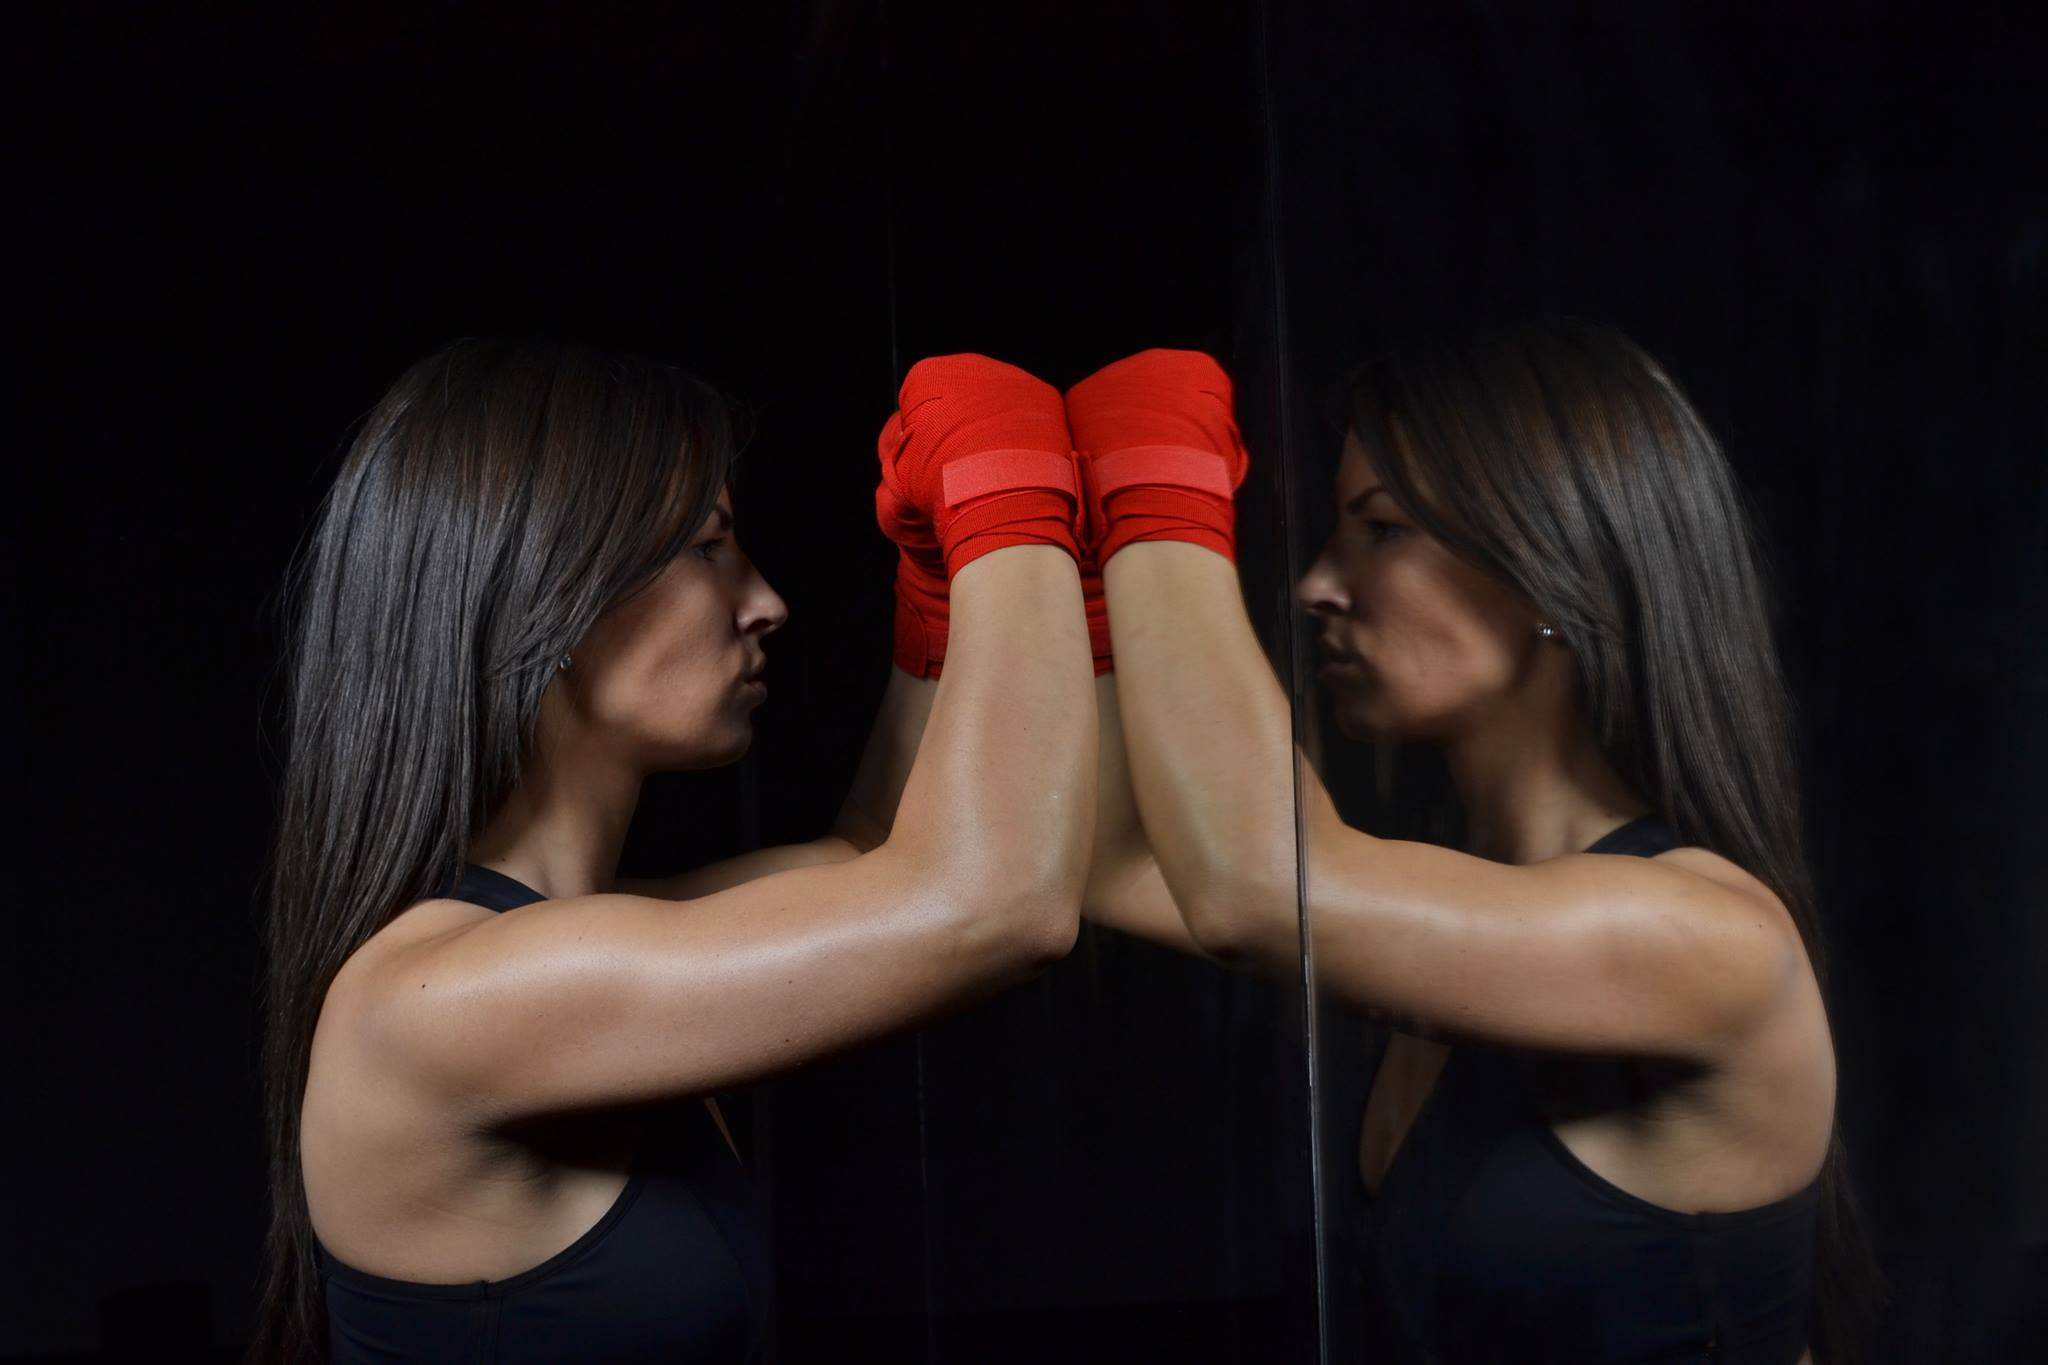 MAAA Kickboxing - Lauderdale-by-the-Sea, FL 33308 - (305)307-5399 | ShowMeLocal.com